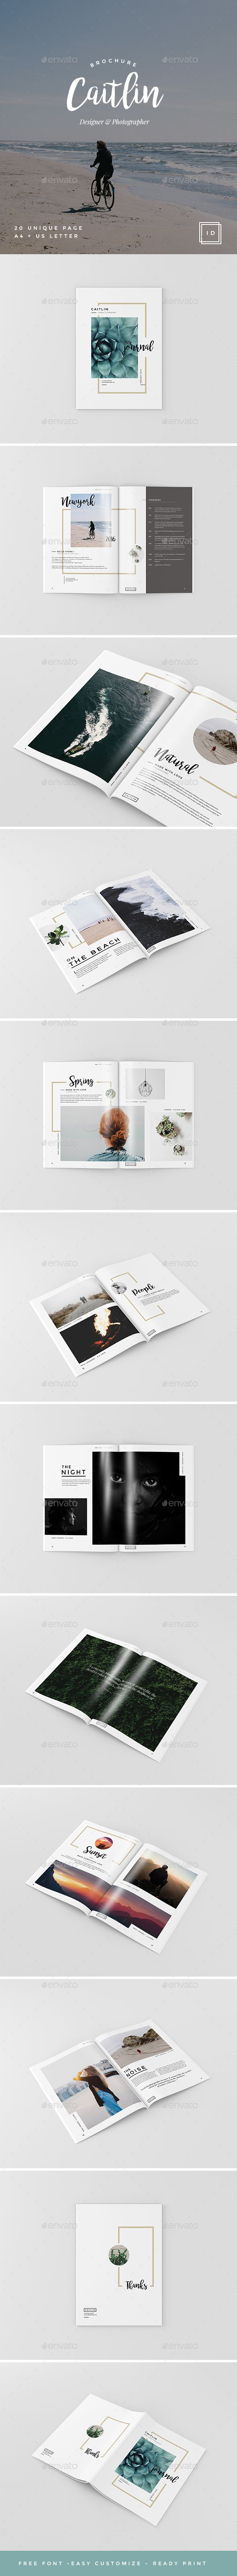 Caitlin - Creative Portfolio, Photography Brochure Template InDesign INDD. Download here: https://graphicriver.net/item/caitlin-creative-portfolio-photography-brochure/17264851?ref=ksioks